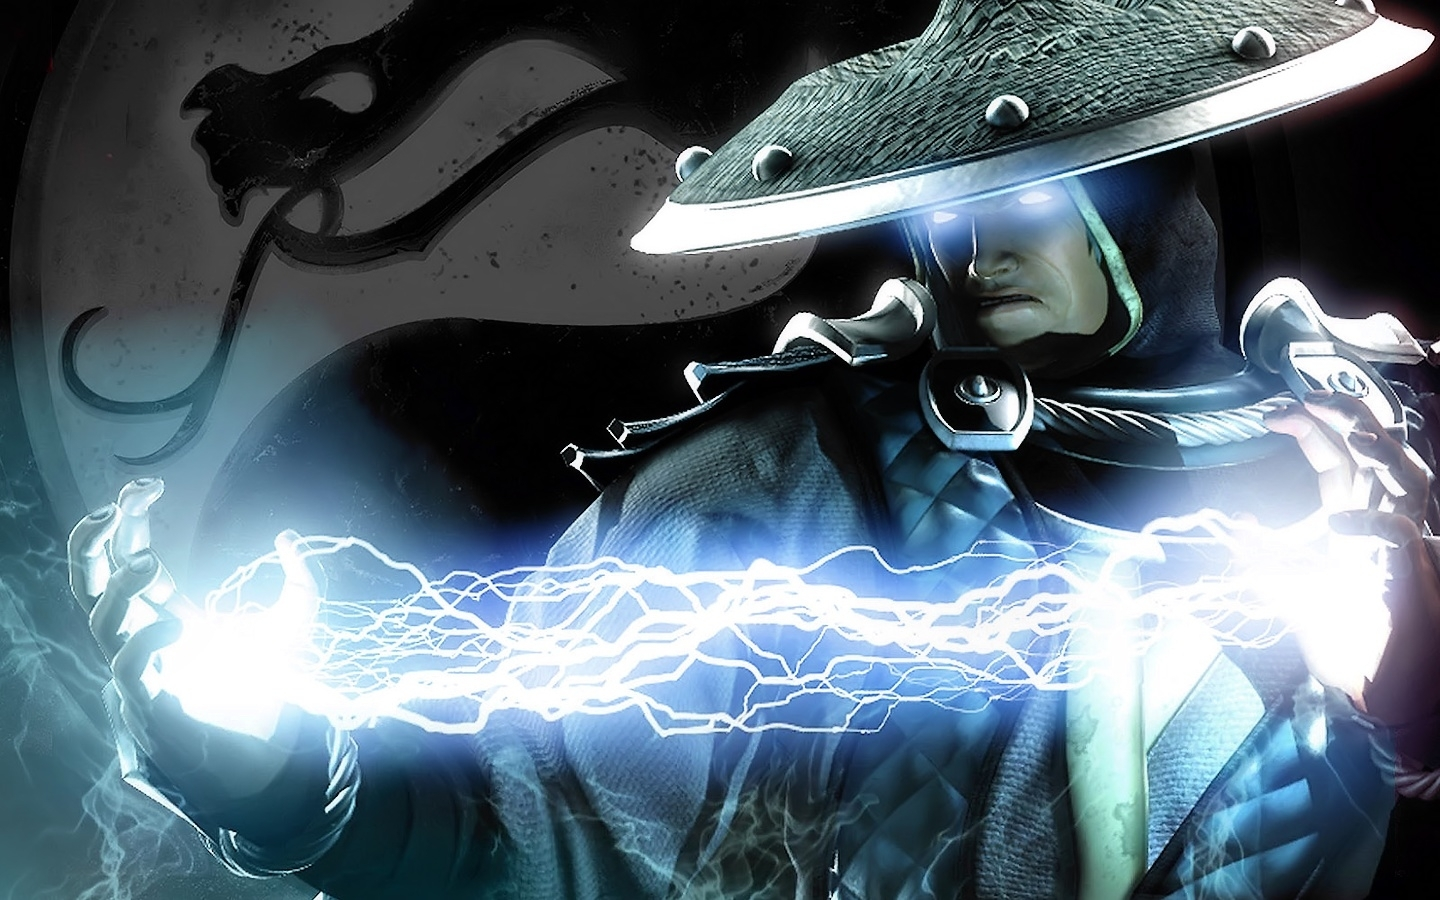 download the mortal kombat raiden wallpaper, mortal kombat raiden